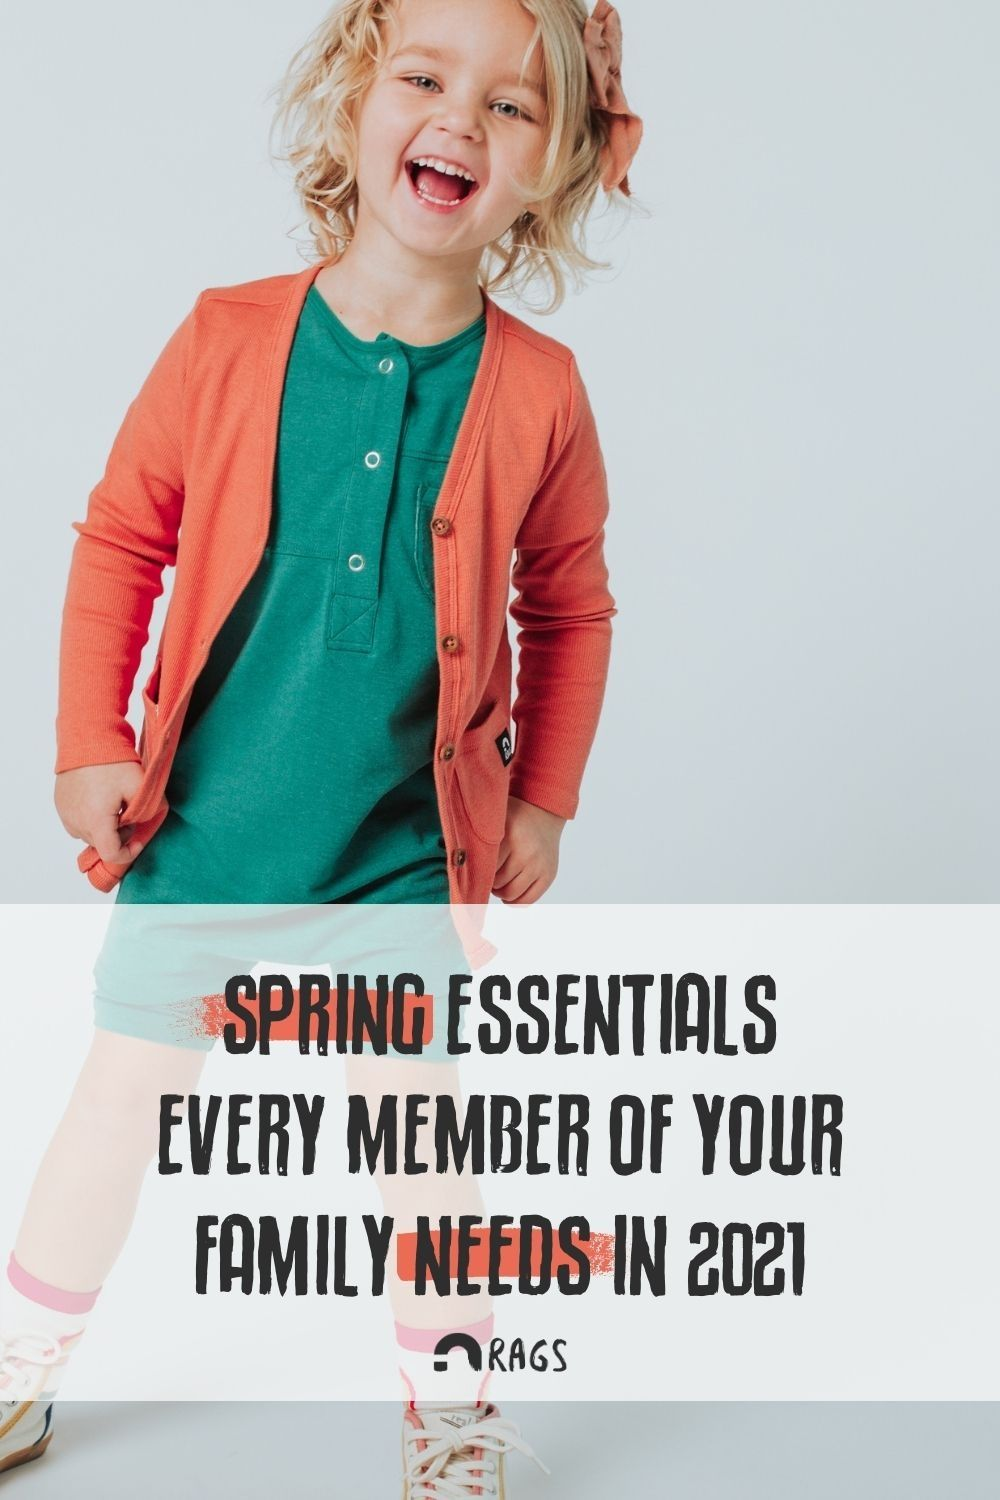 Spring Essentials Every Member of Your Family Needs in 5 in